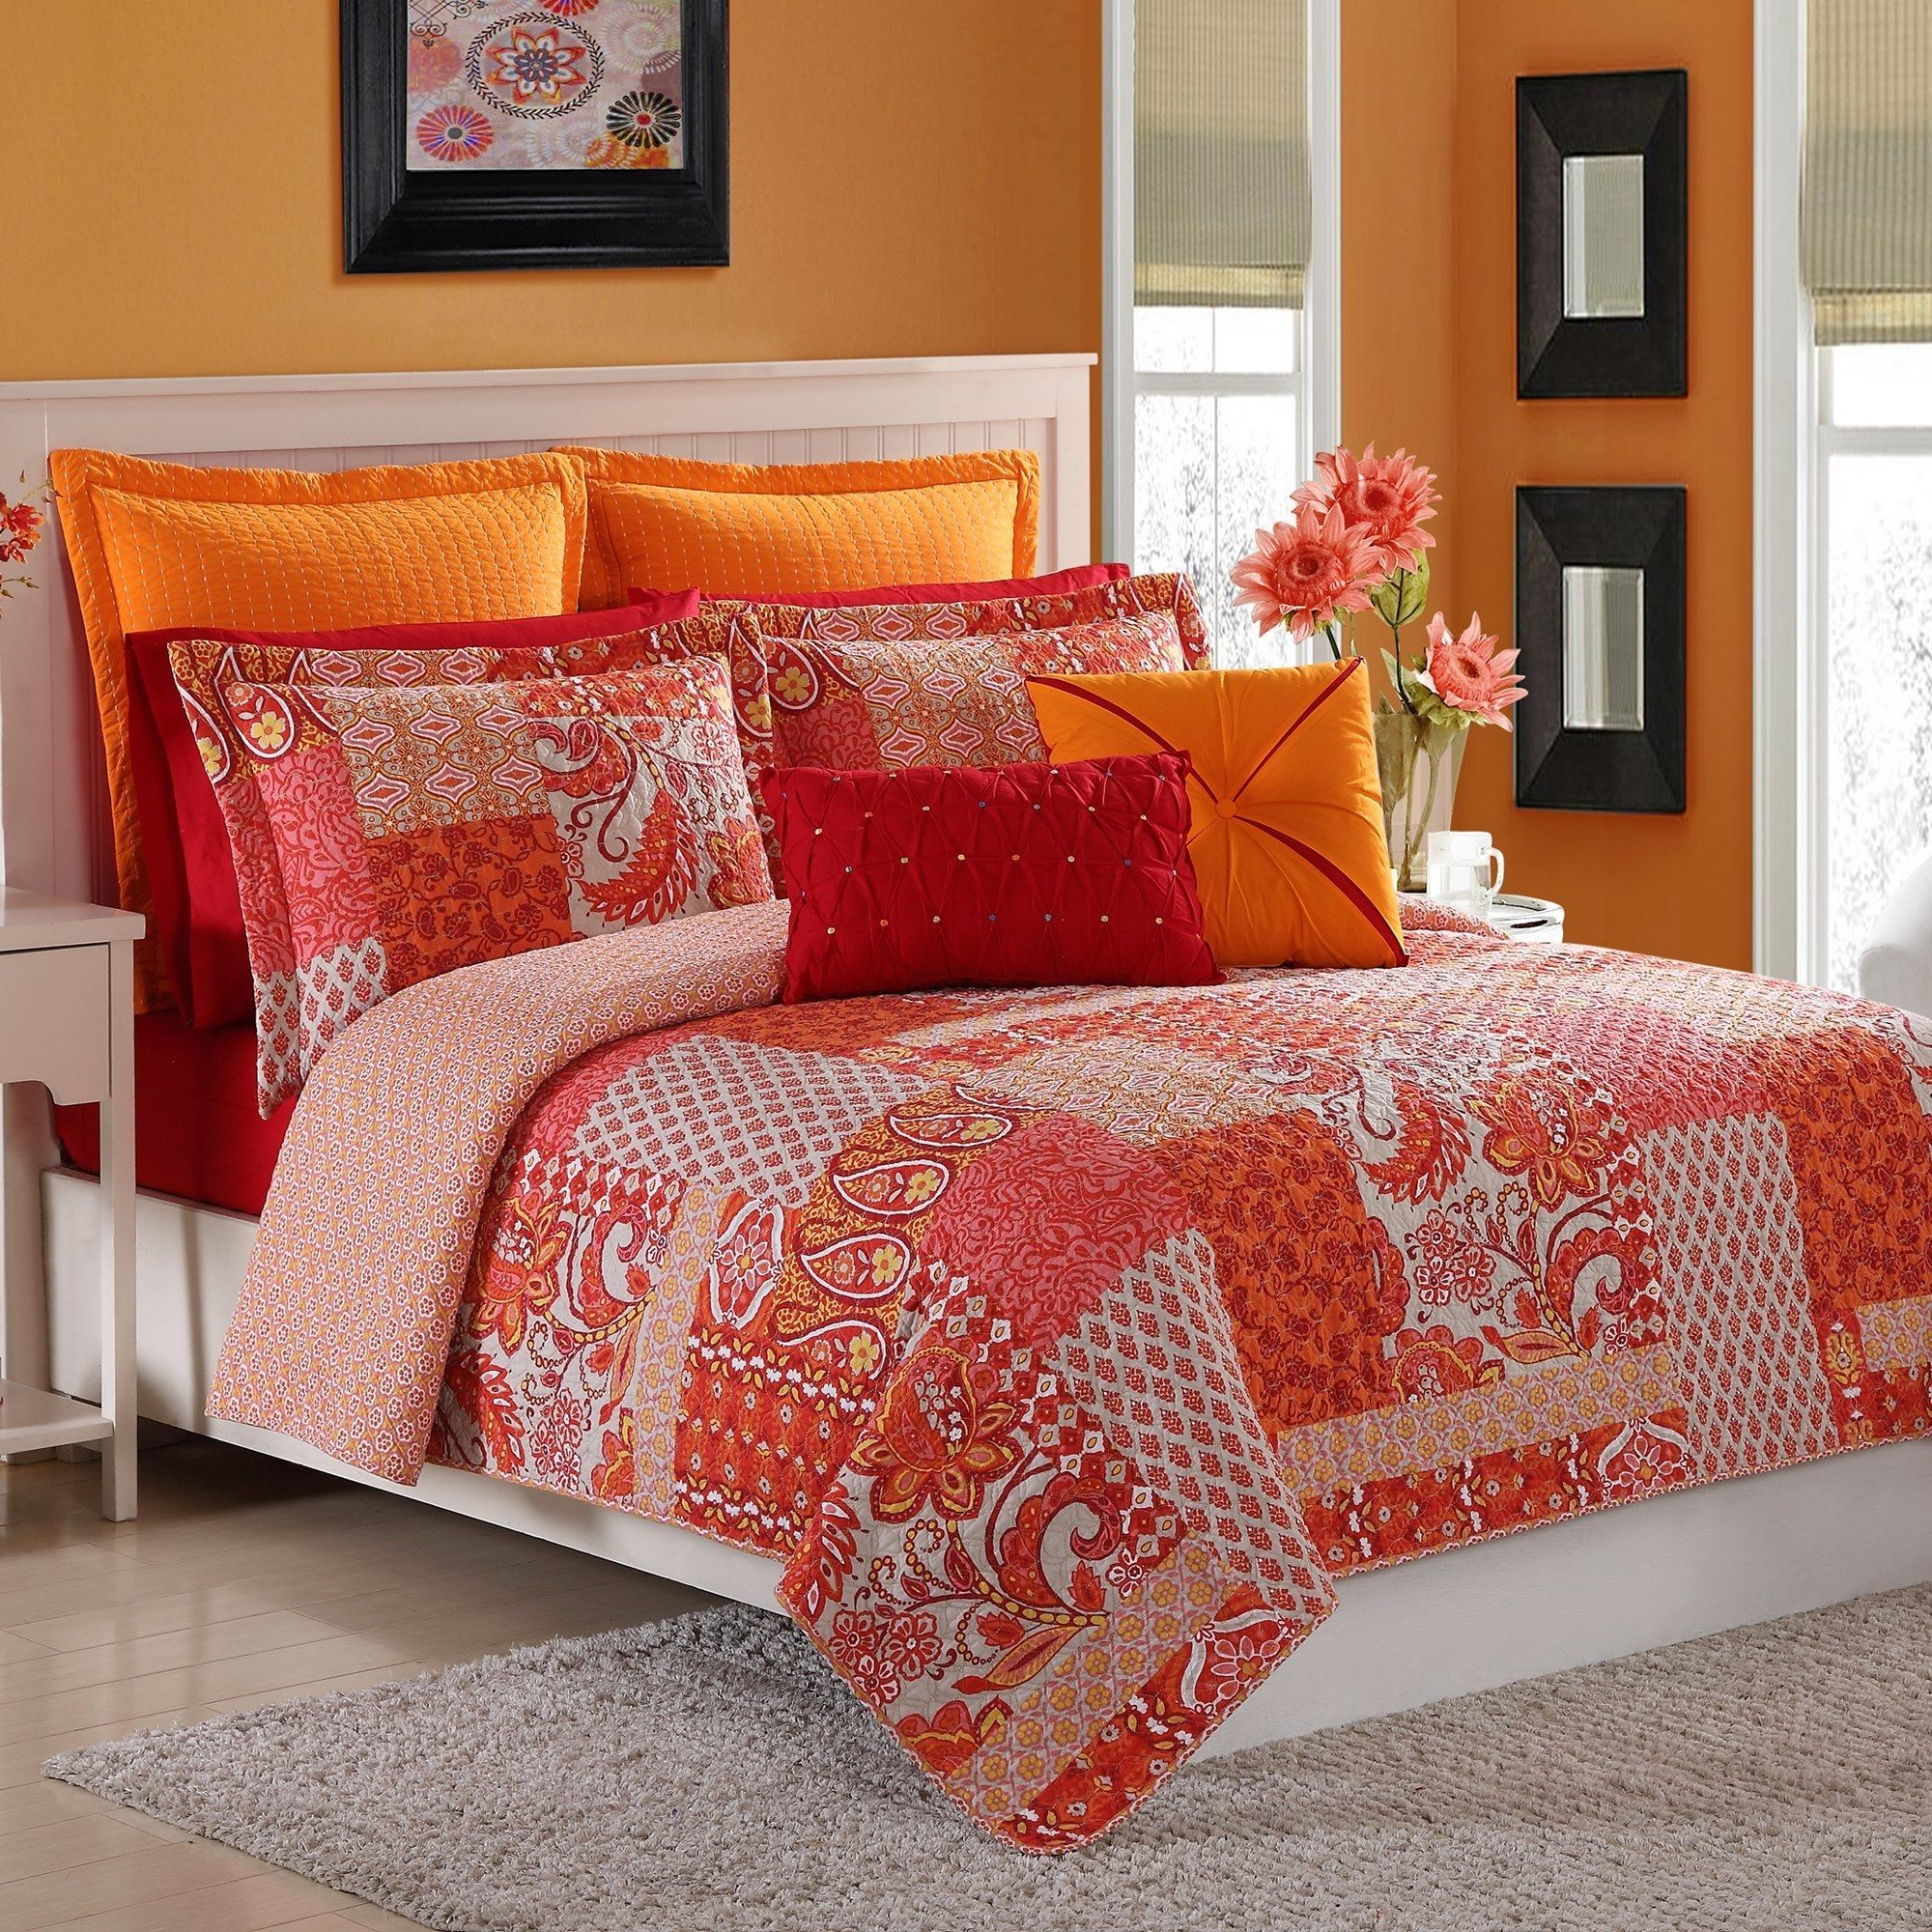 fiesta your bedroom red bohemian pin touch set add quilt and a to with marchia this orange